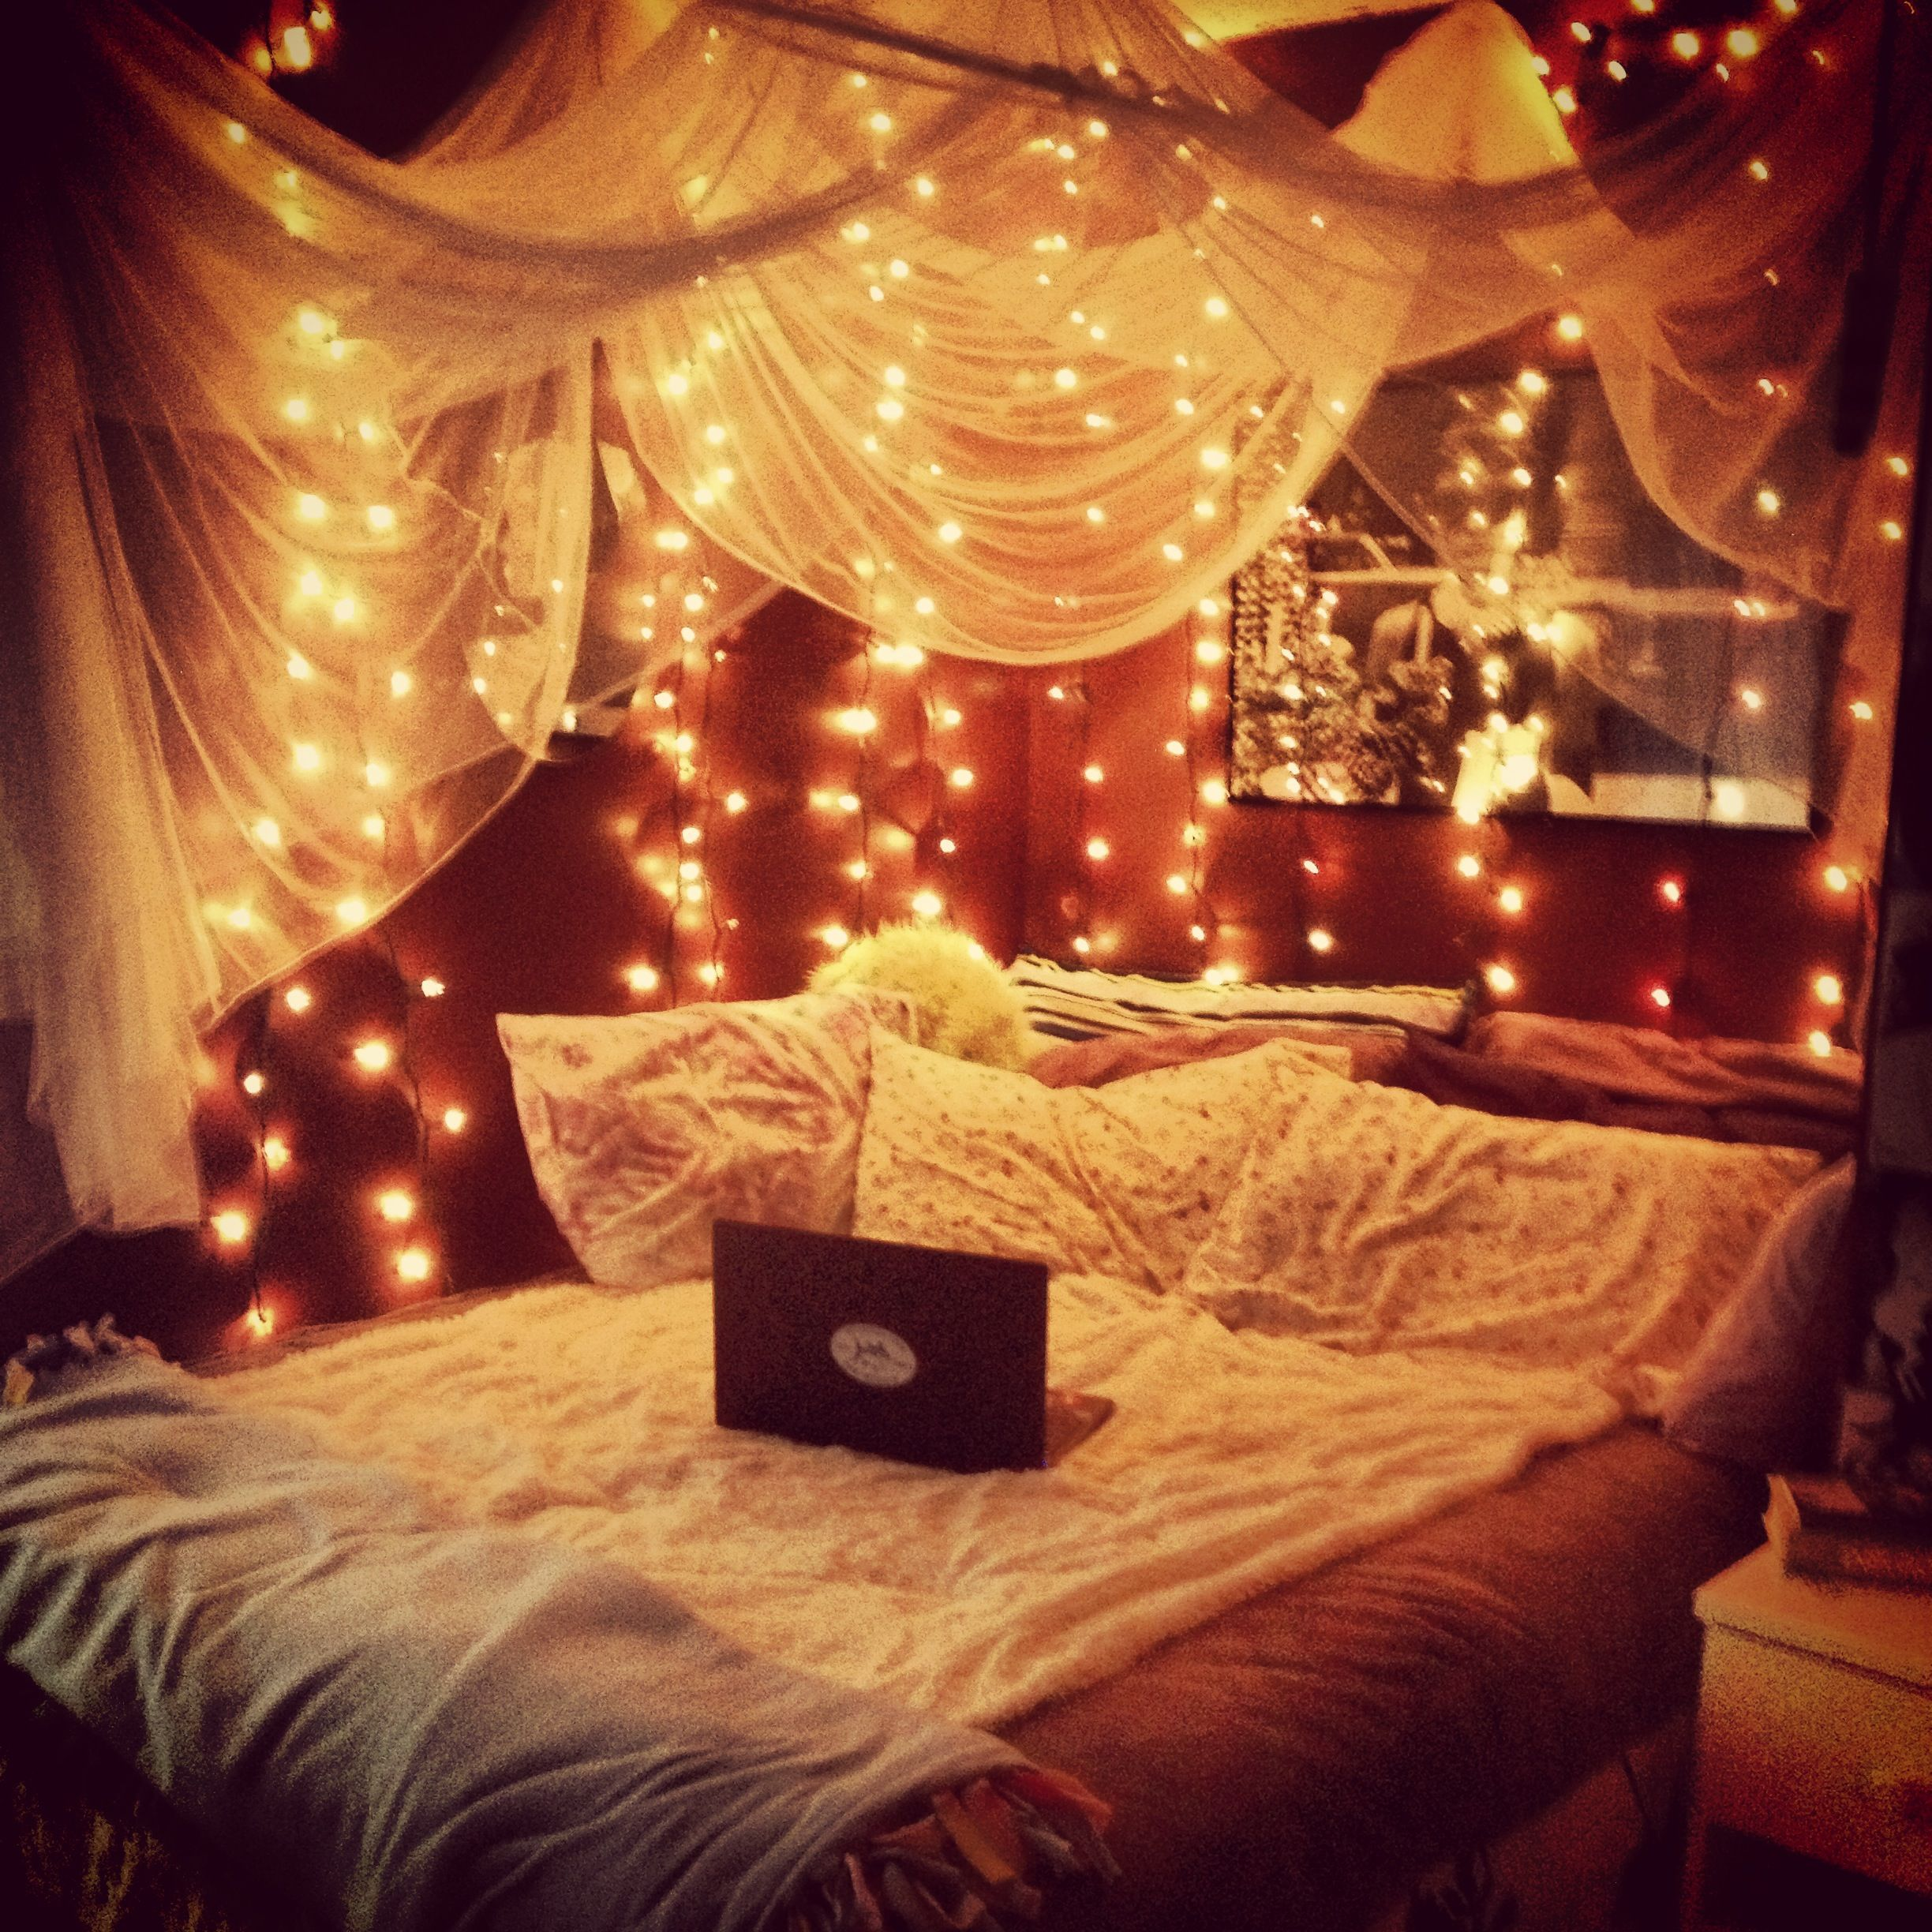 Indoor christmas lights for bedroom - How To Create The Perfect Reading Nook Photos